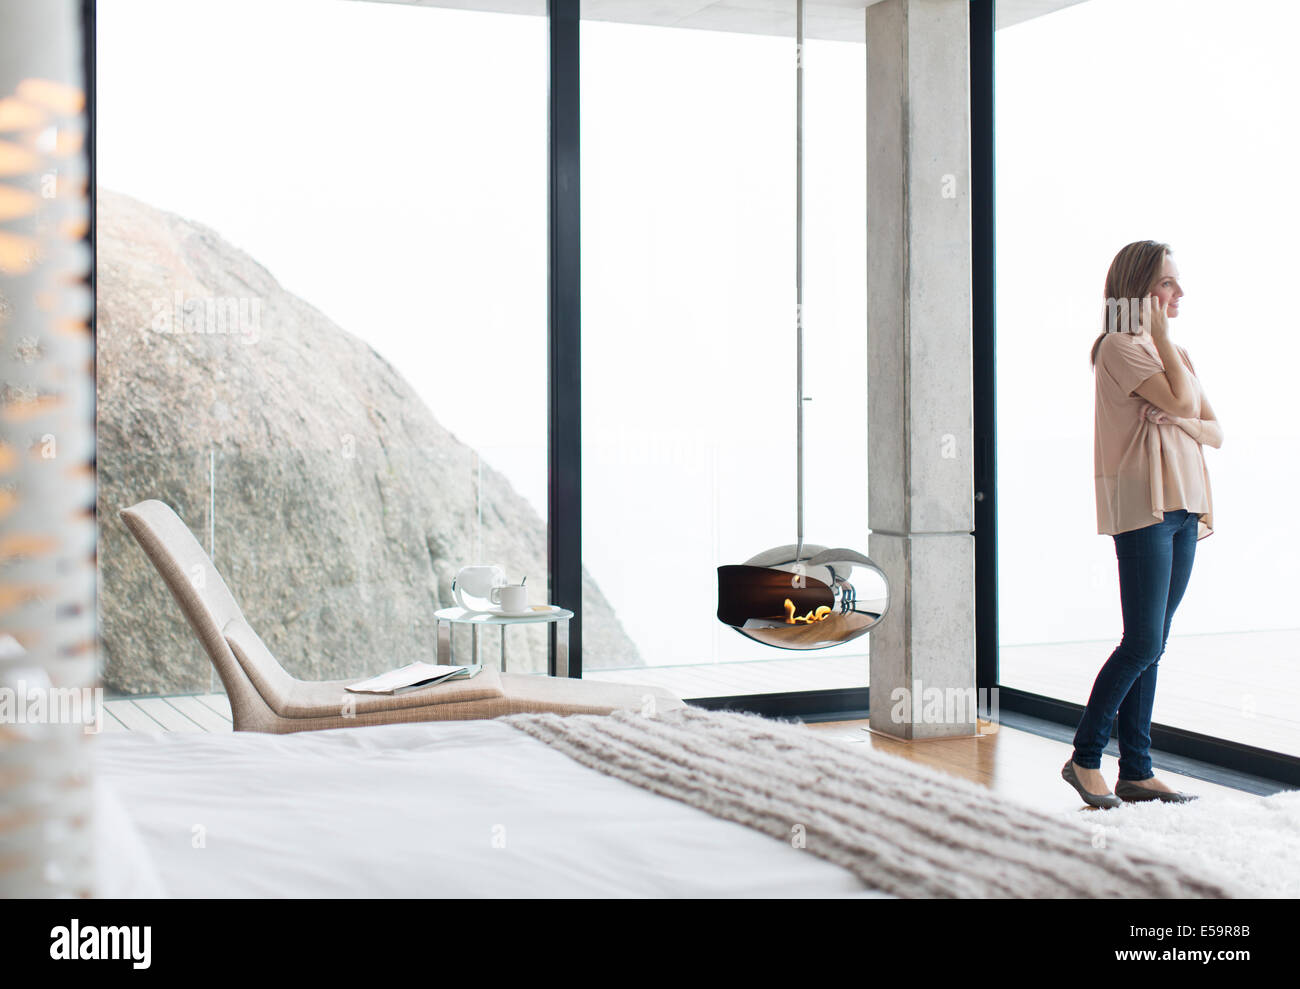 looking at glass wall stockfotos looking at glass wall bilder alamy. Black Bedroom Furniture Sets. Home Design Ideas